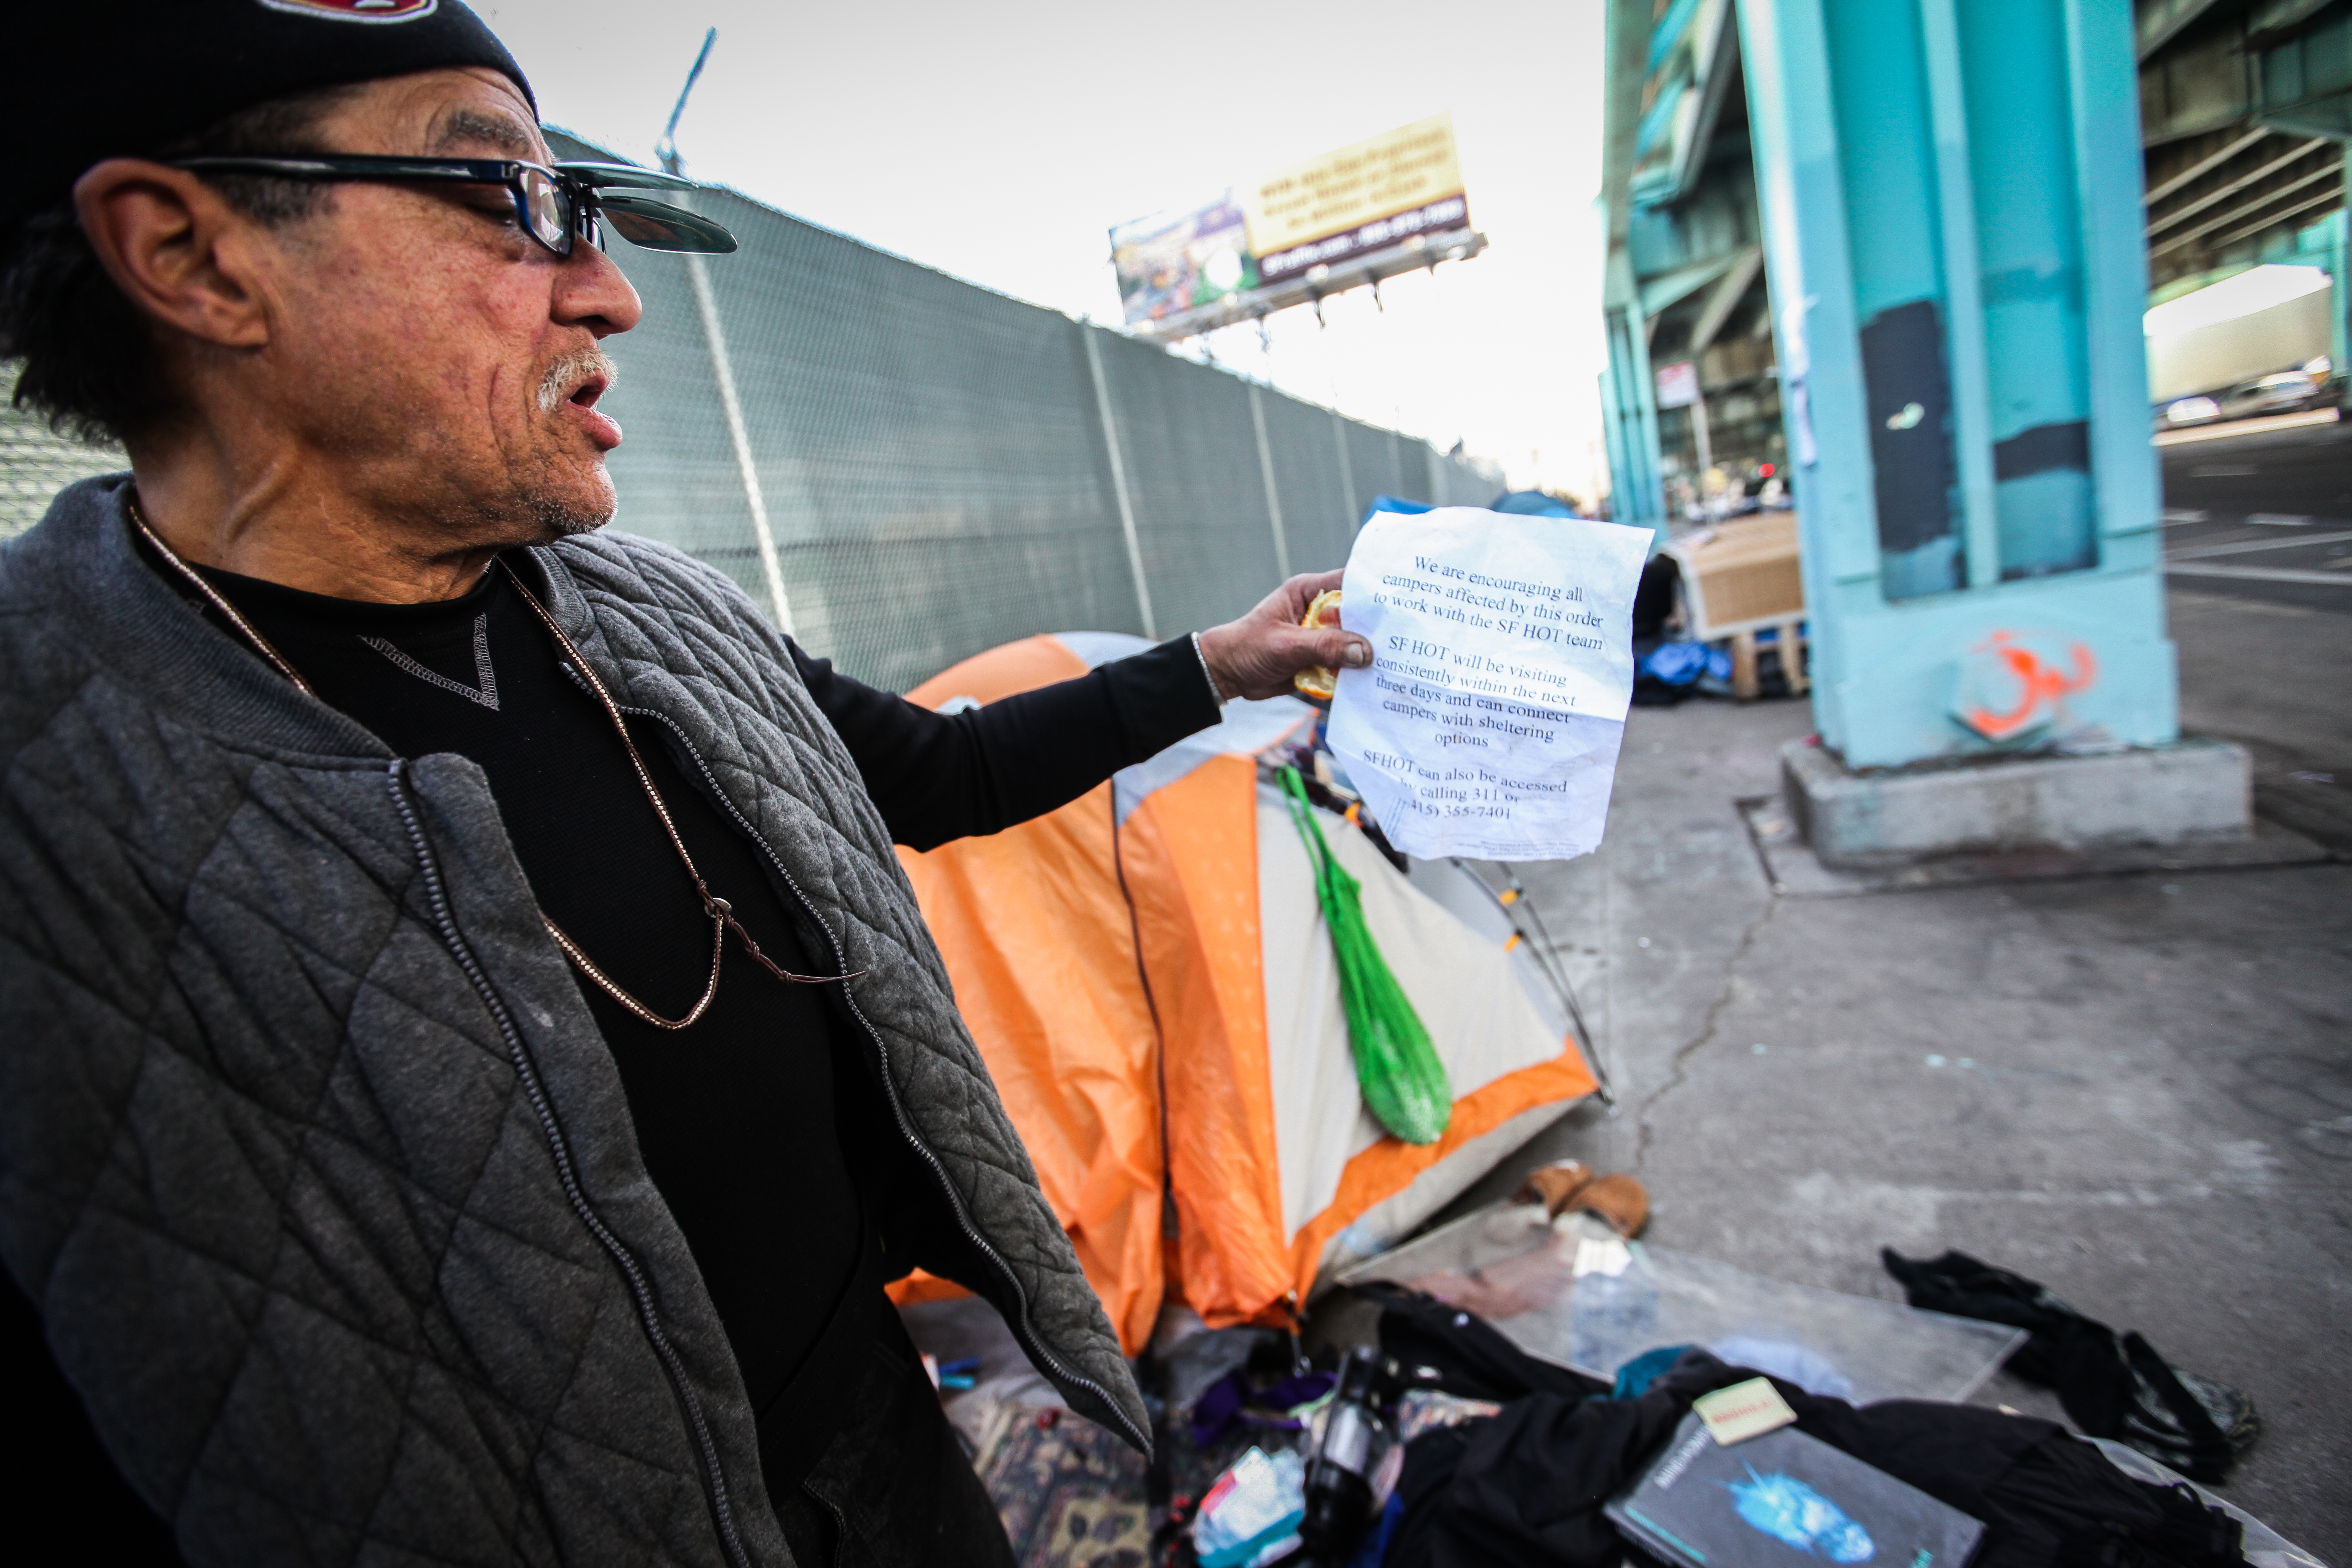 A homeless man Larry Muraoka, 67, holds the back side of Abatement order to vacate notice he received from Department of Public Health. The notice ordered all homeless encampment tent owners to vacate the area by Friday, February 26. A former barber for 17 years and 4 years worked as a fireman, Muraoka is now living in a tent near 13th and Division streets for 4-5 months long and today he plans to move his tent and leave the area at 6 p.m. Thursday, February 25, 2016. (Ekevara Kitpowsong/ Special to S.F. Examiner)